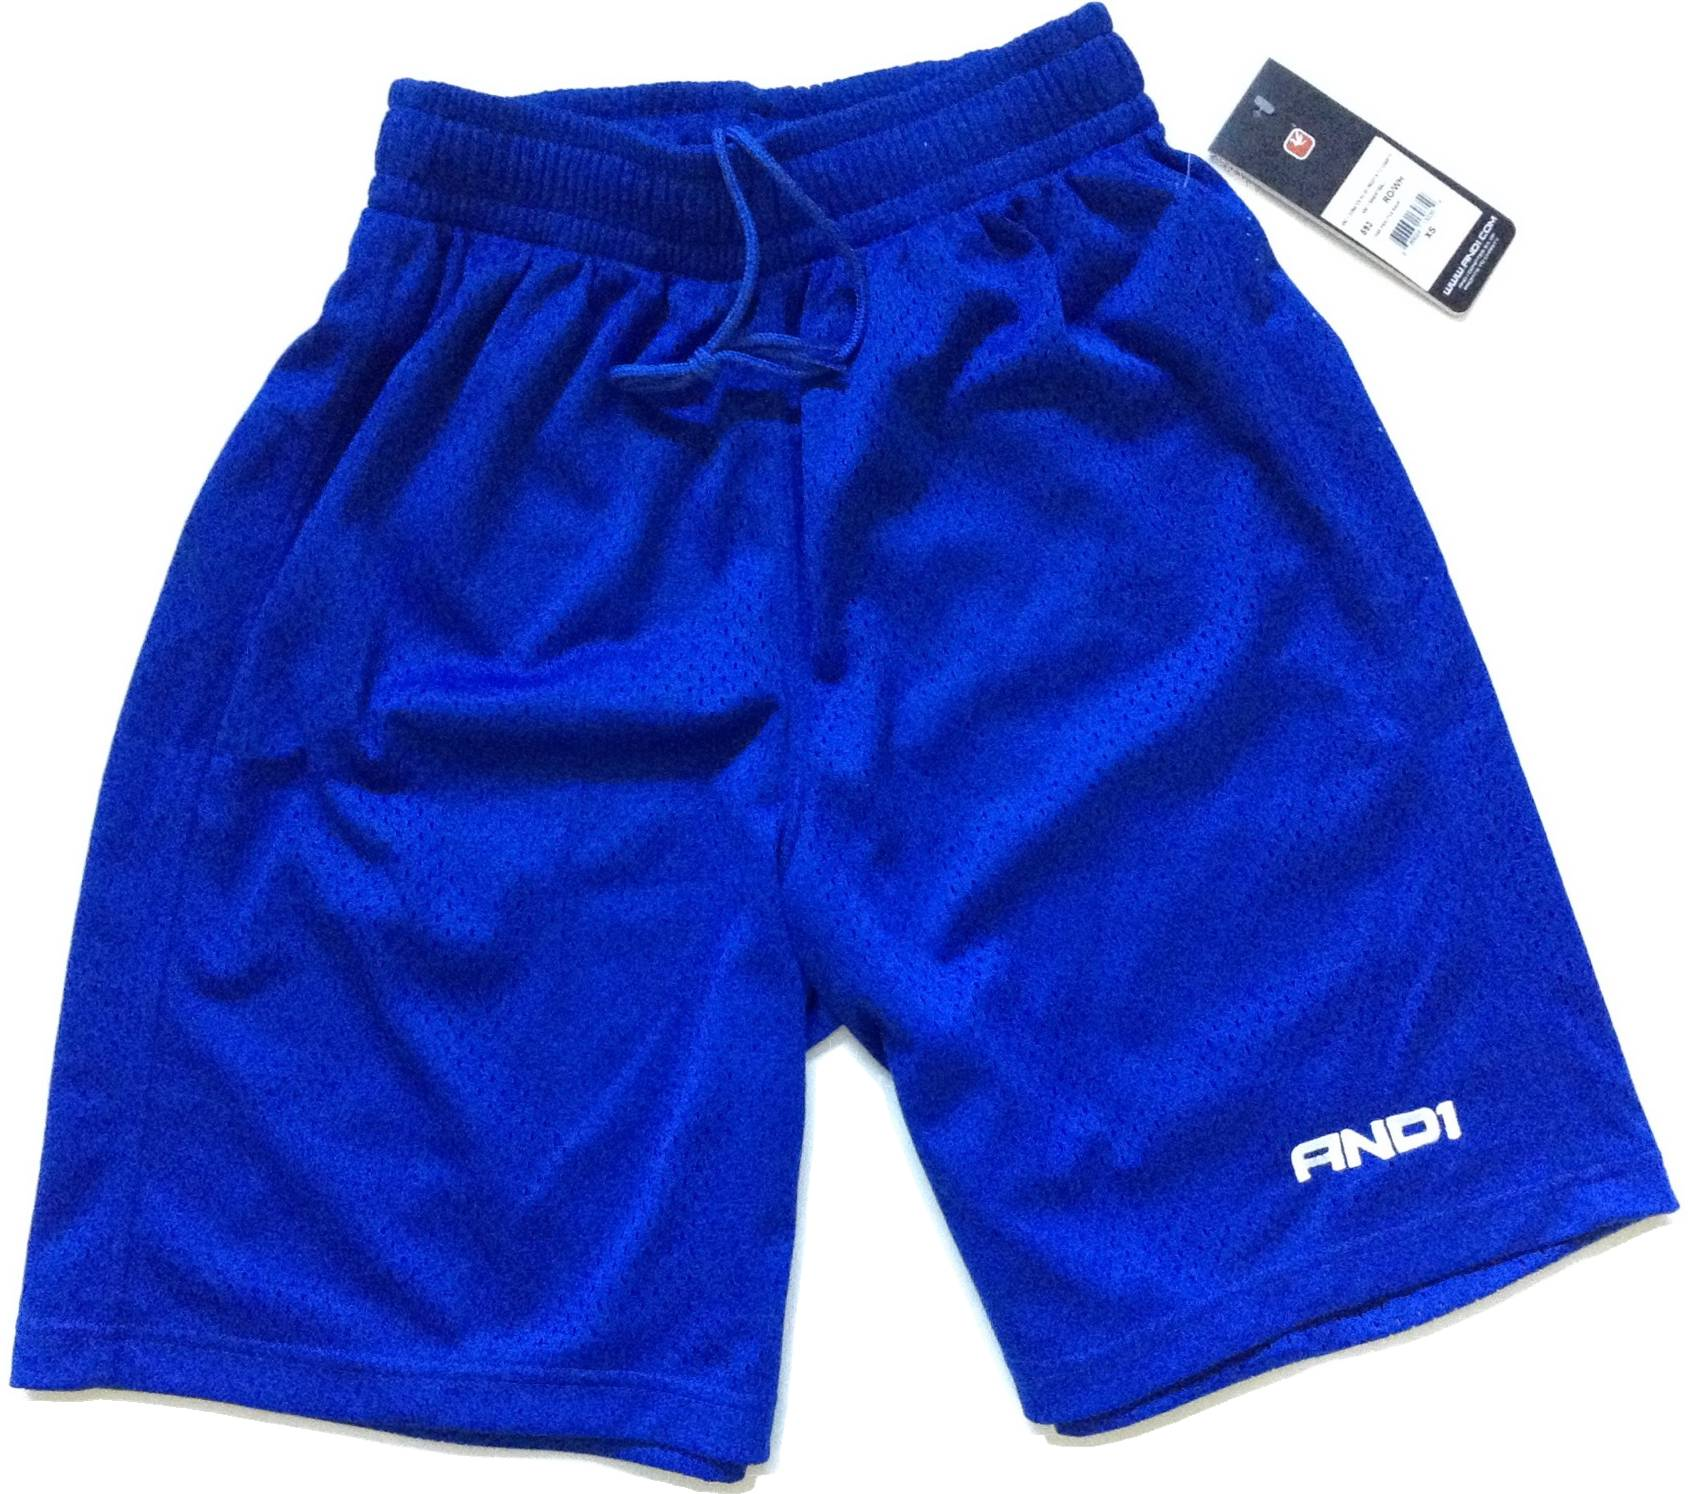 AND1 Mens Basketball Practice Shorts AO-592/404